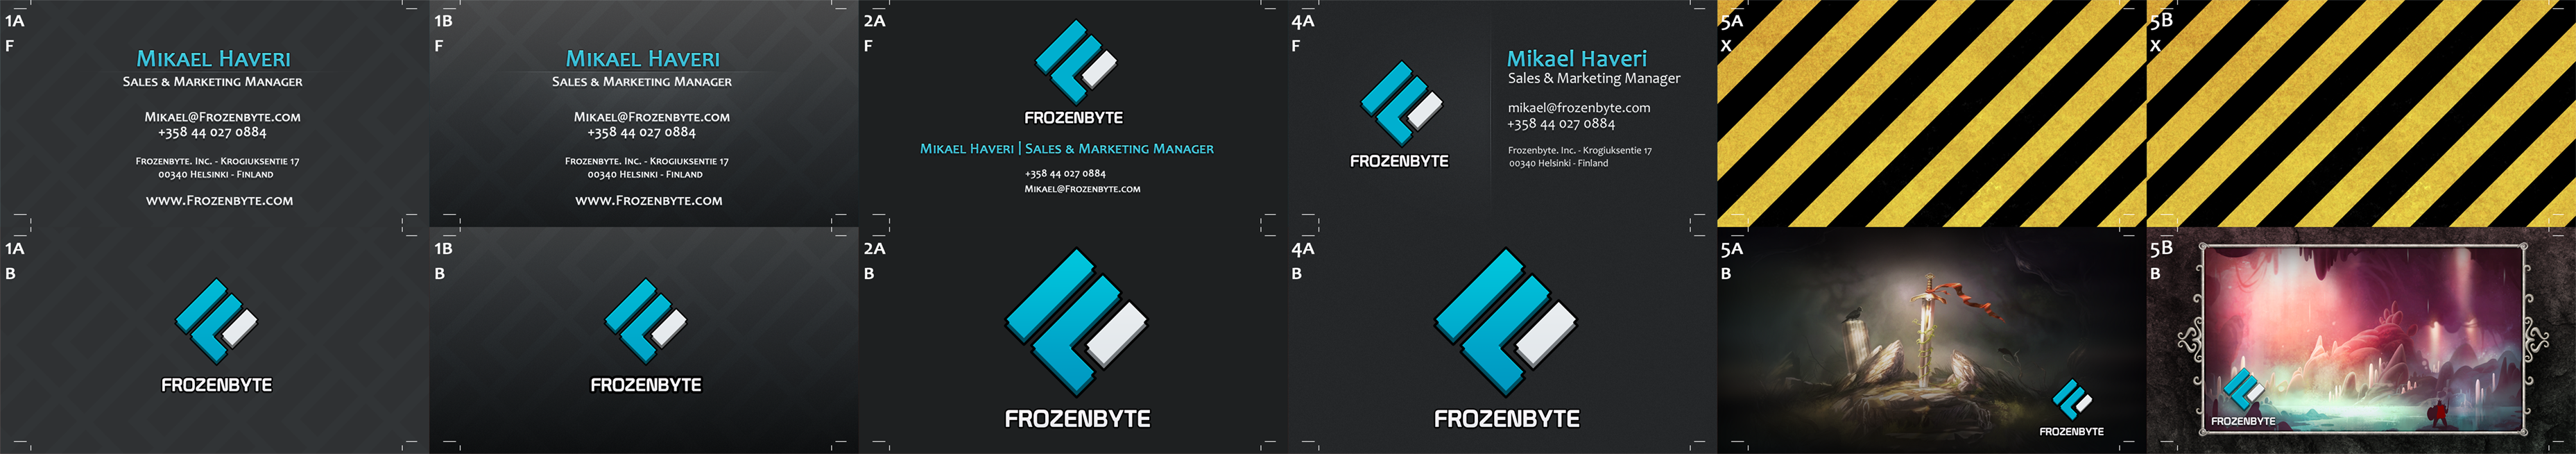 Frozenbyte Business-cards - Initial Mockups by jo-shadow